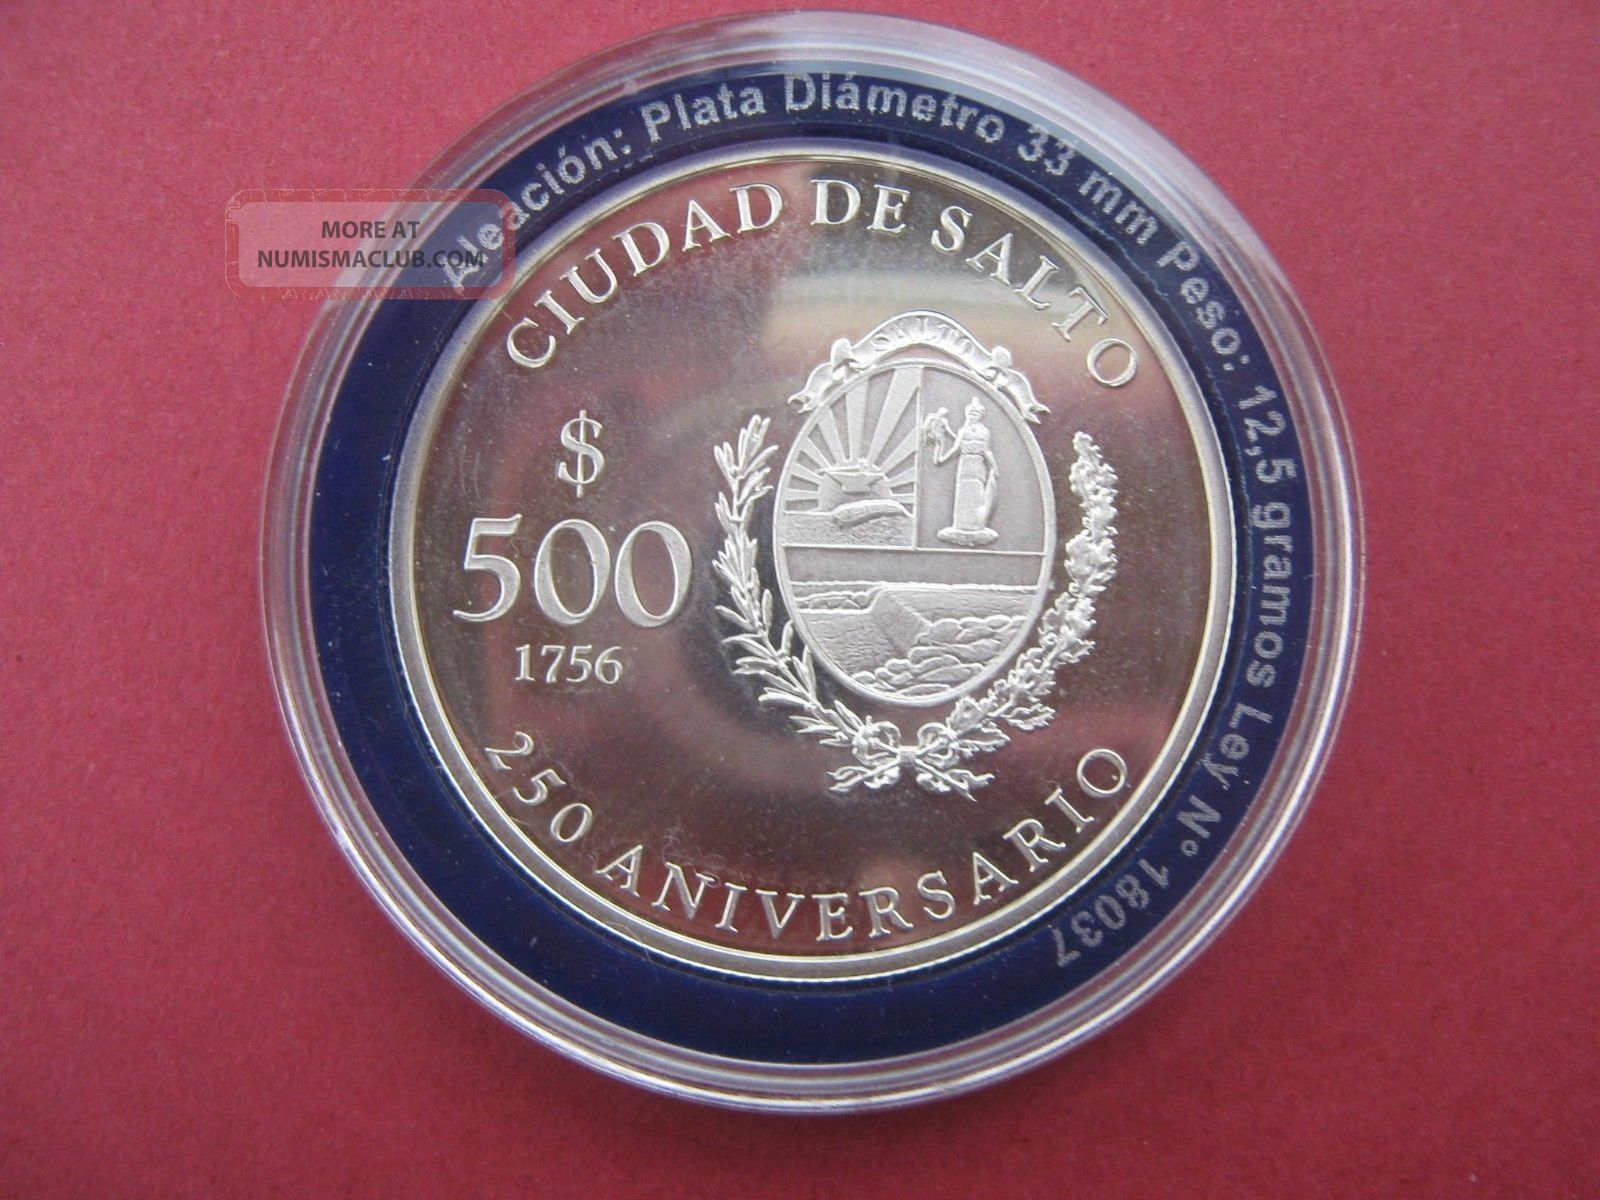 Uruguay - 900 Silver Coin 500 Pesos 2006 - 250 Aniversary Of Salto City - Unc South America photo